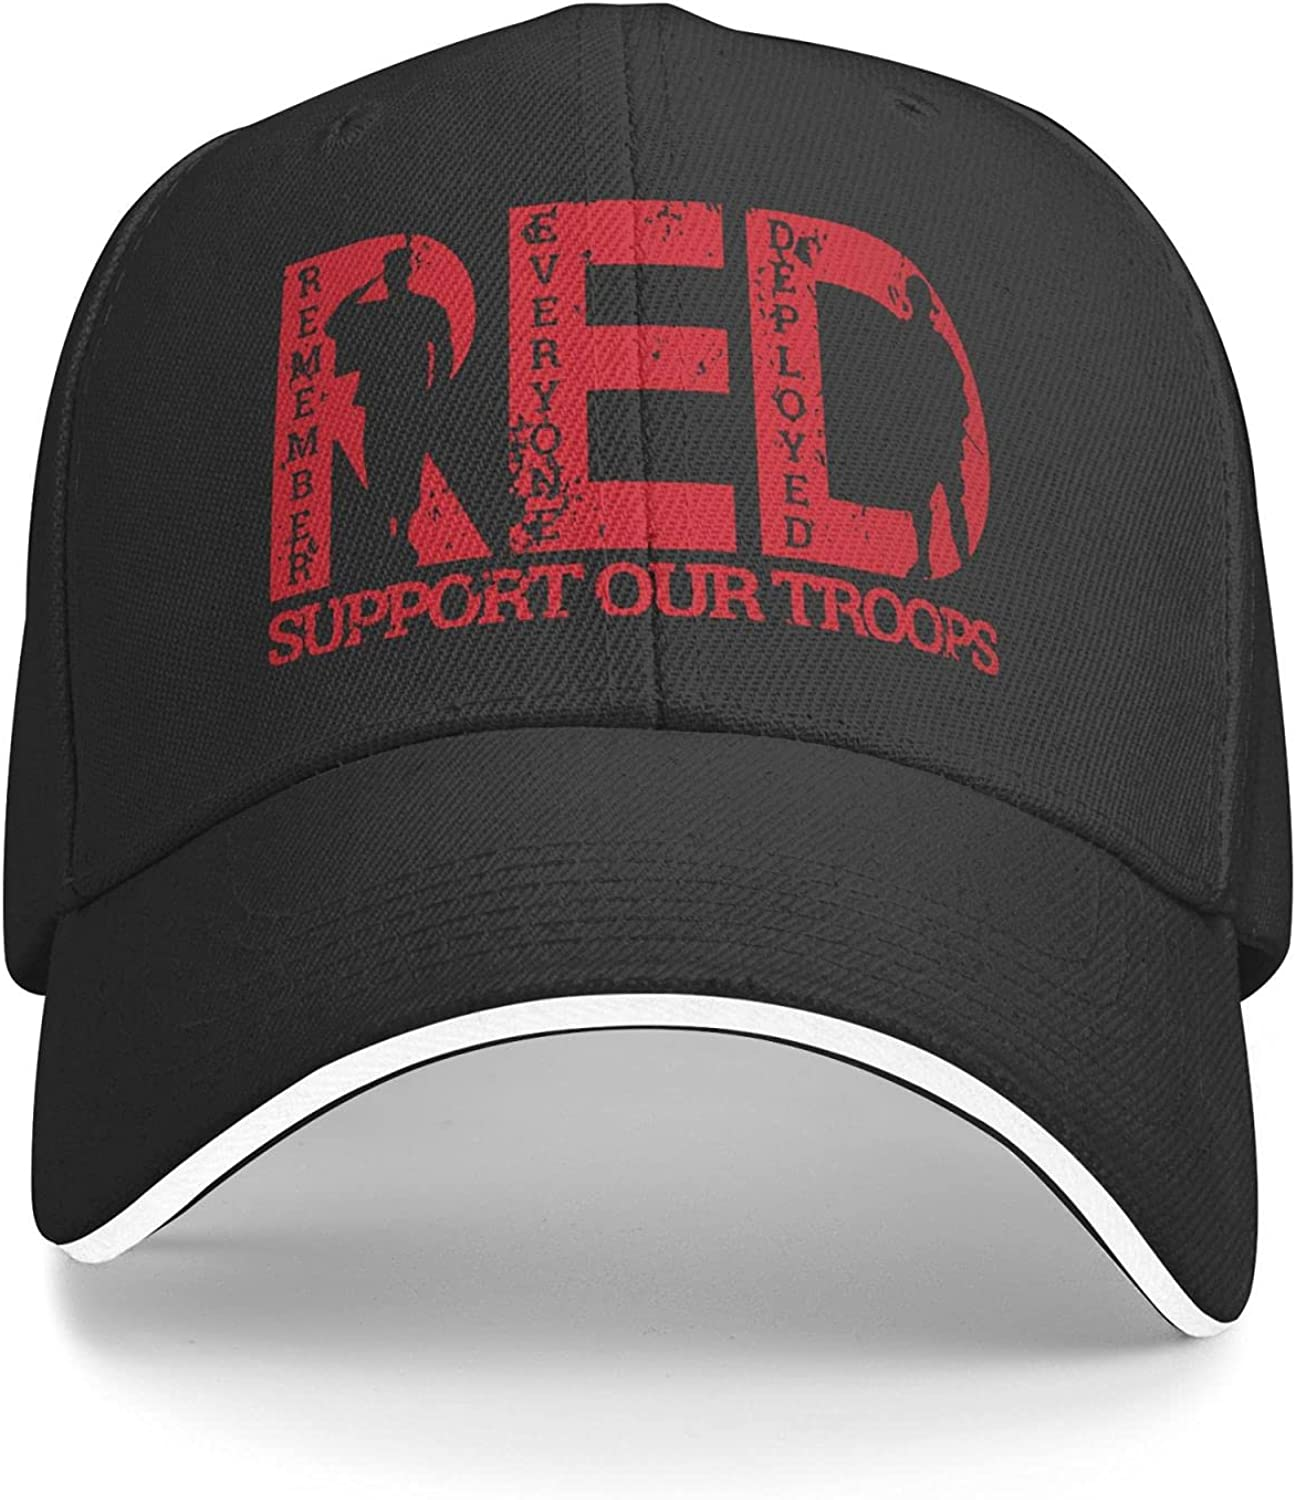 Remember Everyone Deployed Red Friday Sun Hat Dad Hat Baseball Cap Cotton Adjustable Fitted for Women Men